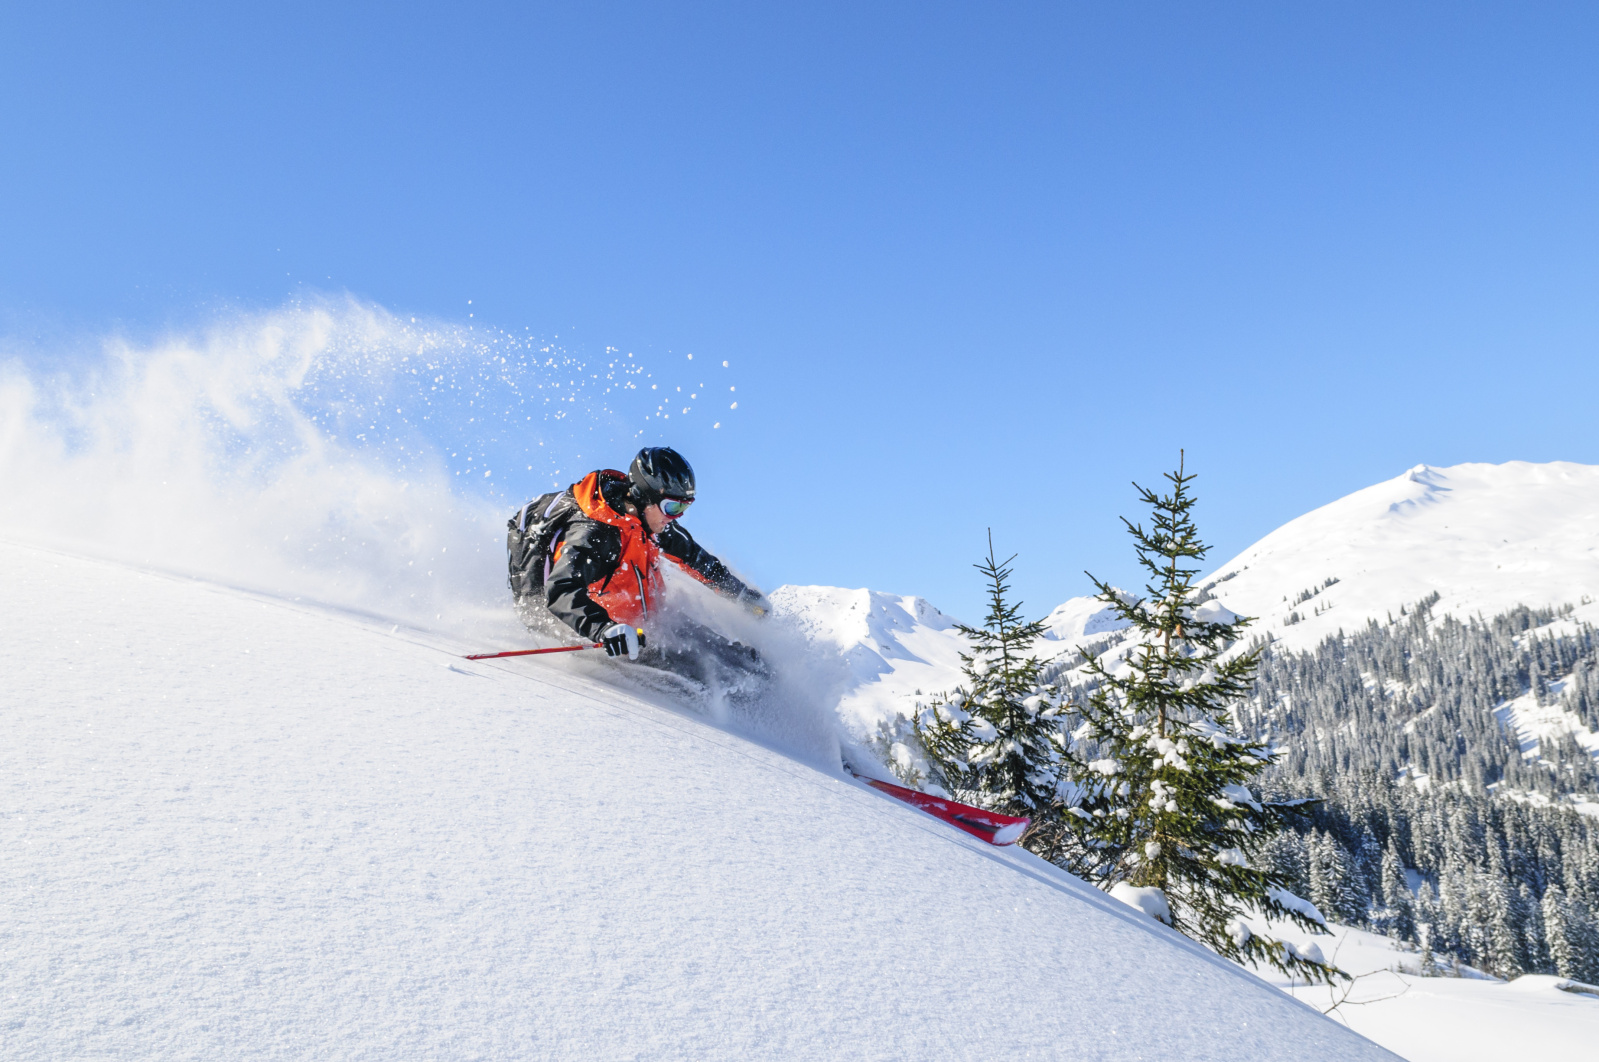 Ongosa discount: 5% off ski instructors and guides